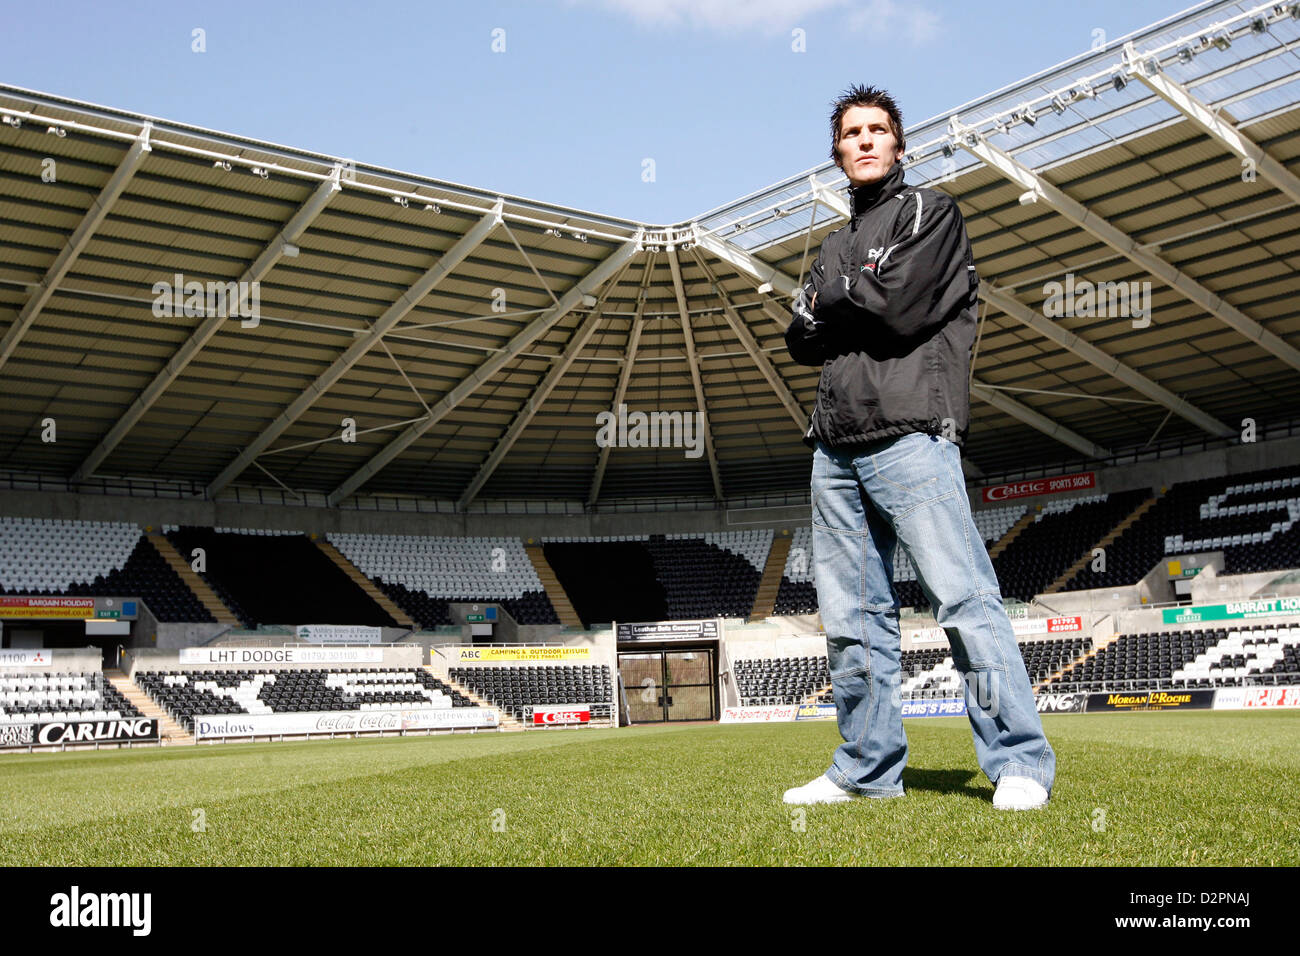 Professional Rugby Player James Hook standing on the pitch at the Liberty Stadium, Swansea. - Stock Image